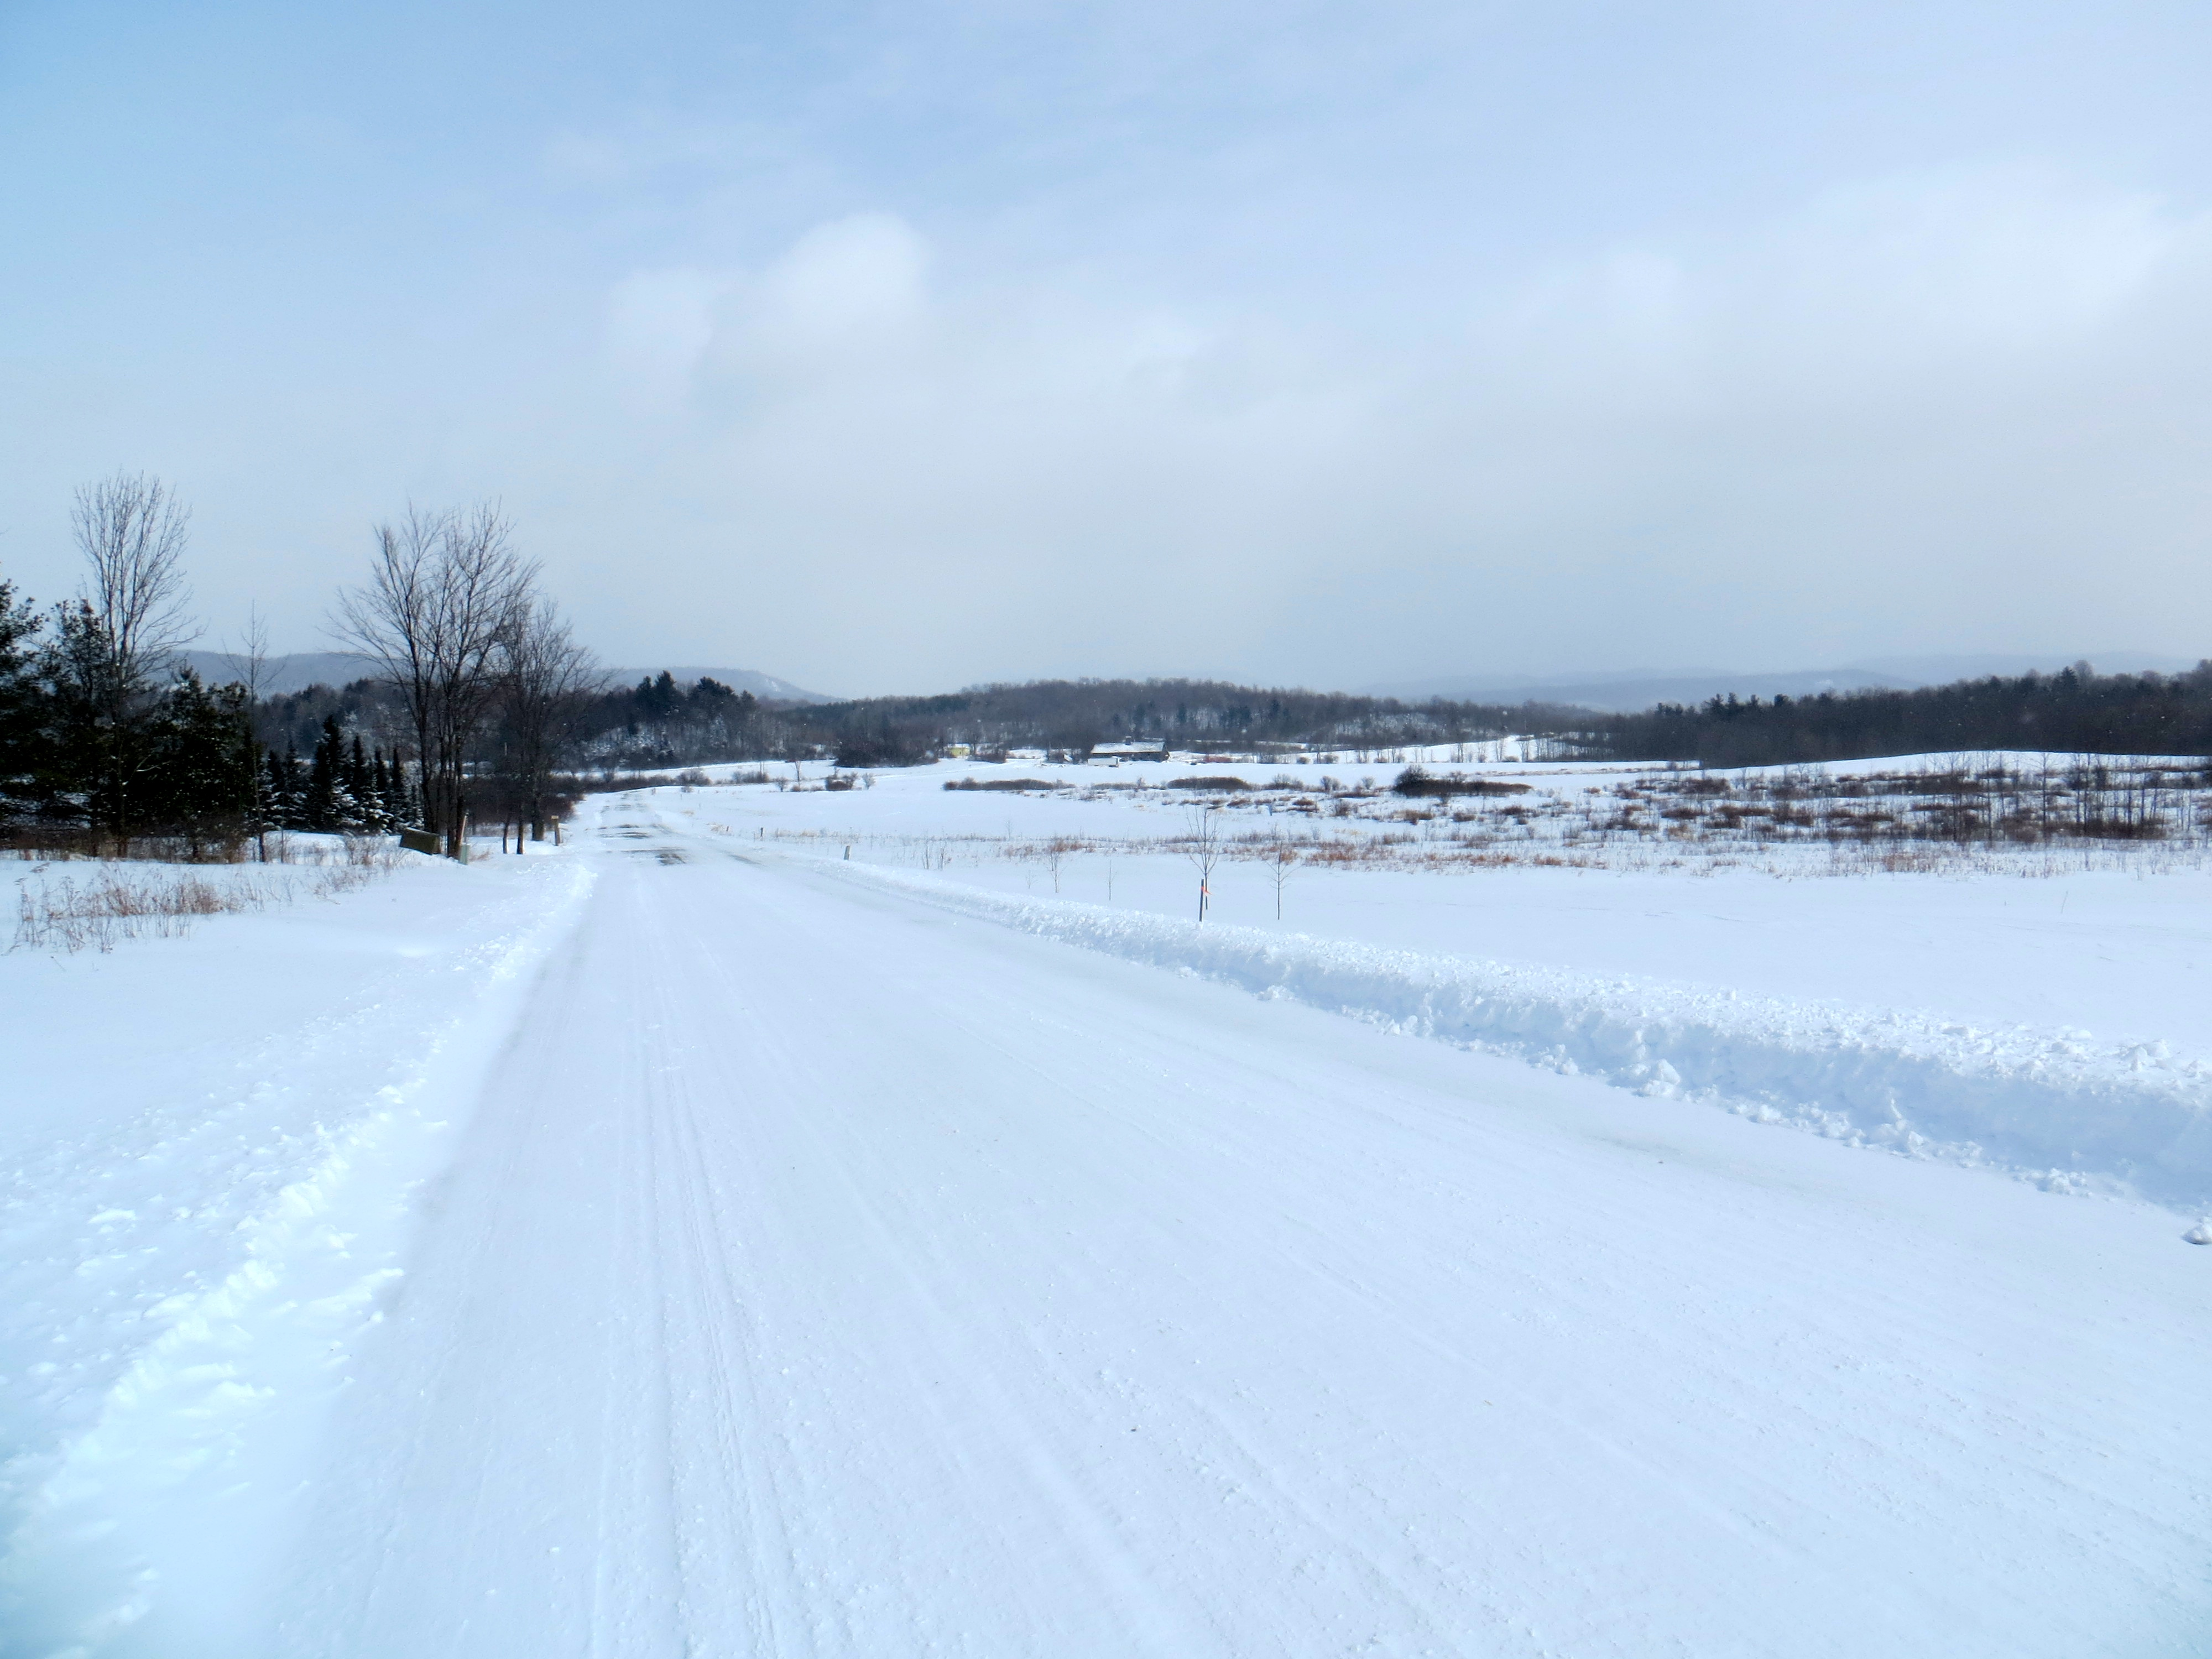 The town road crew got the road passable, but wind kept the drifts coming